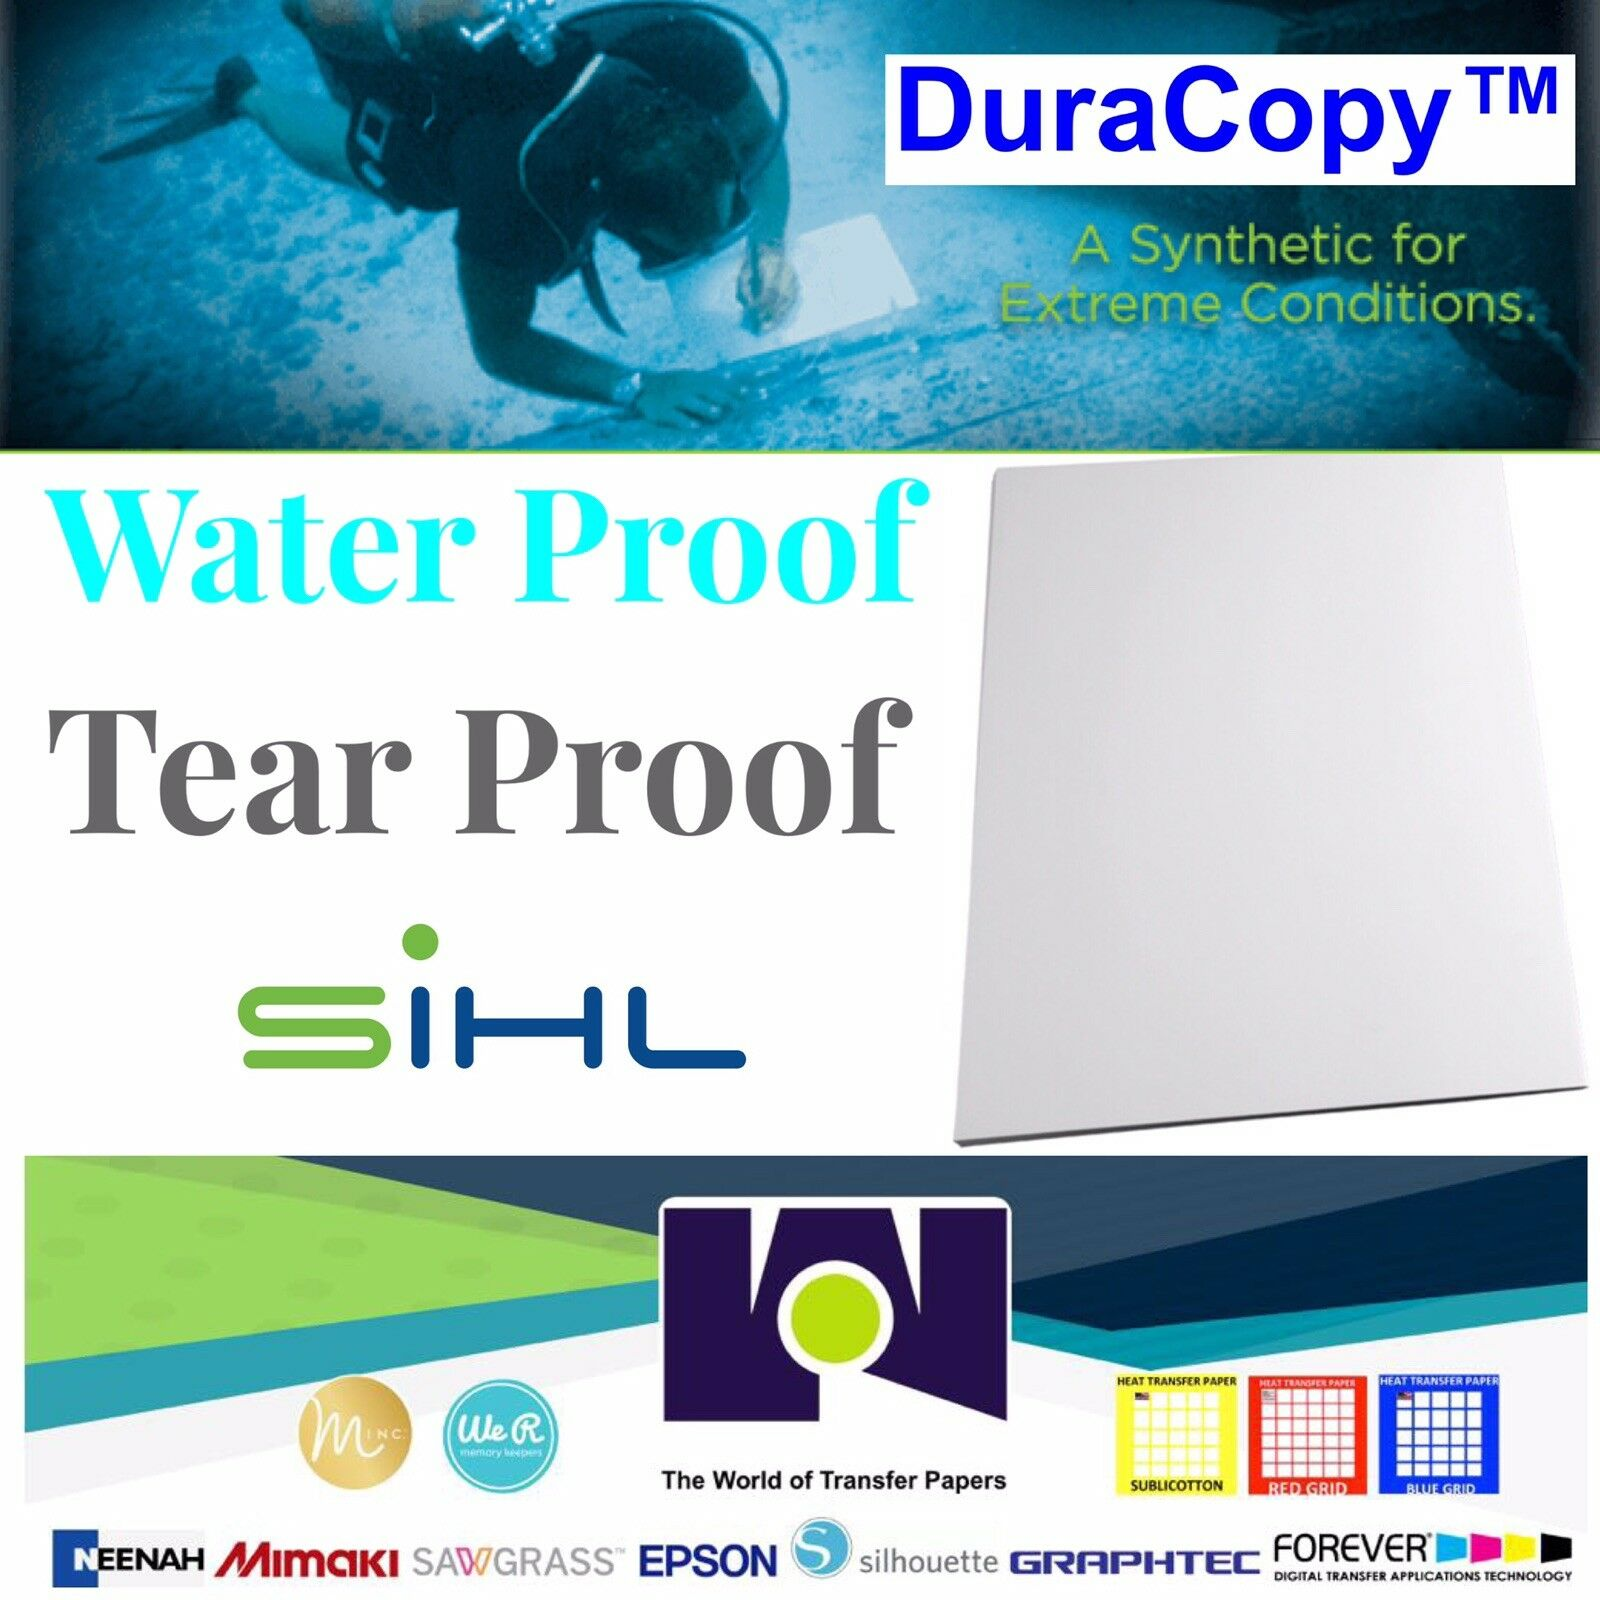 Sihl 3153 DuraCopy™ 8 Mil Synthetic C2S Matte, 100 8.5 x11  Sheets FREE SHIPPING